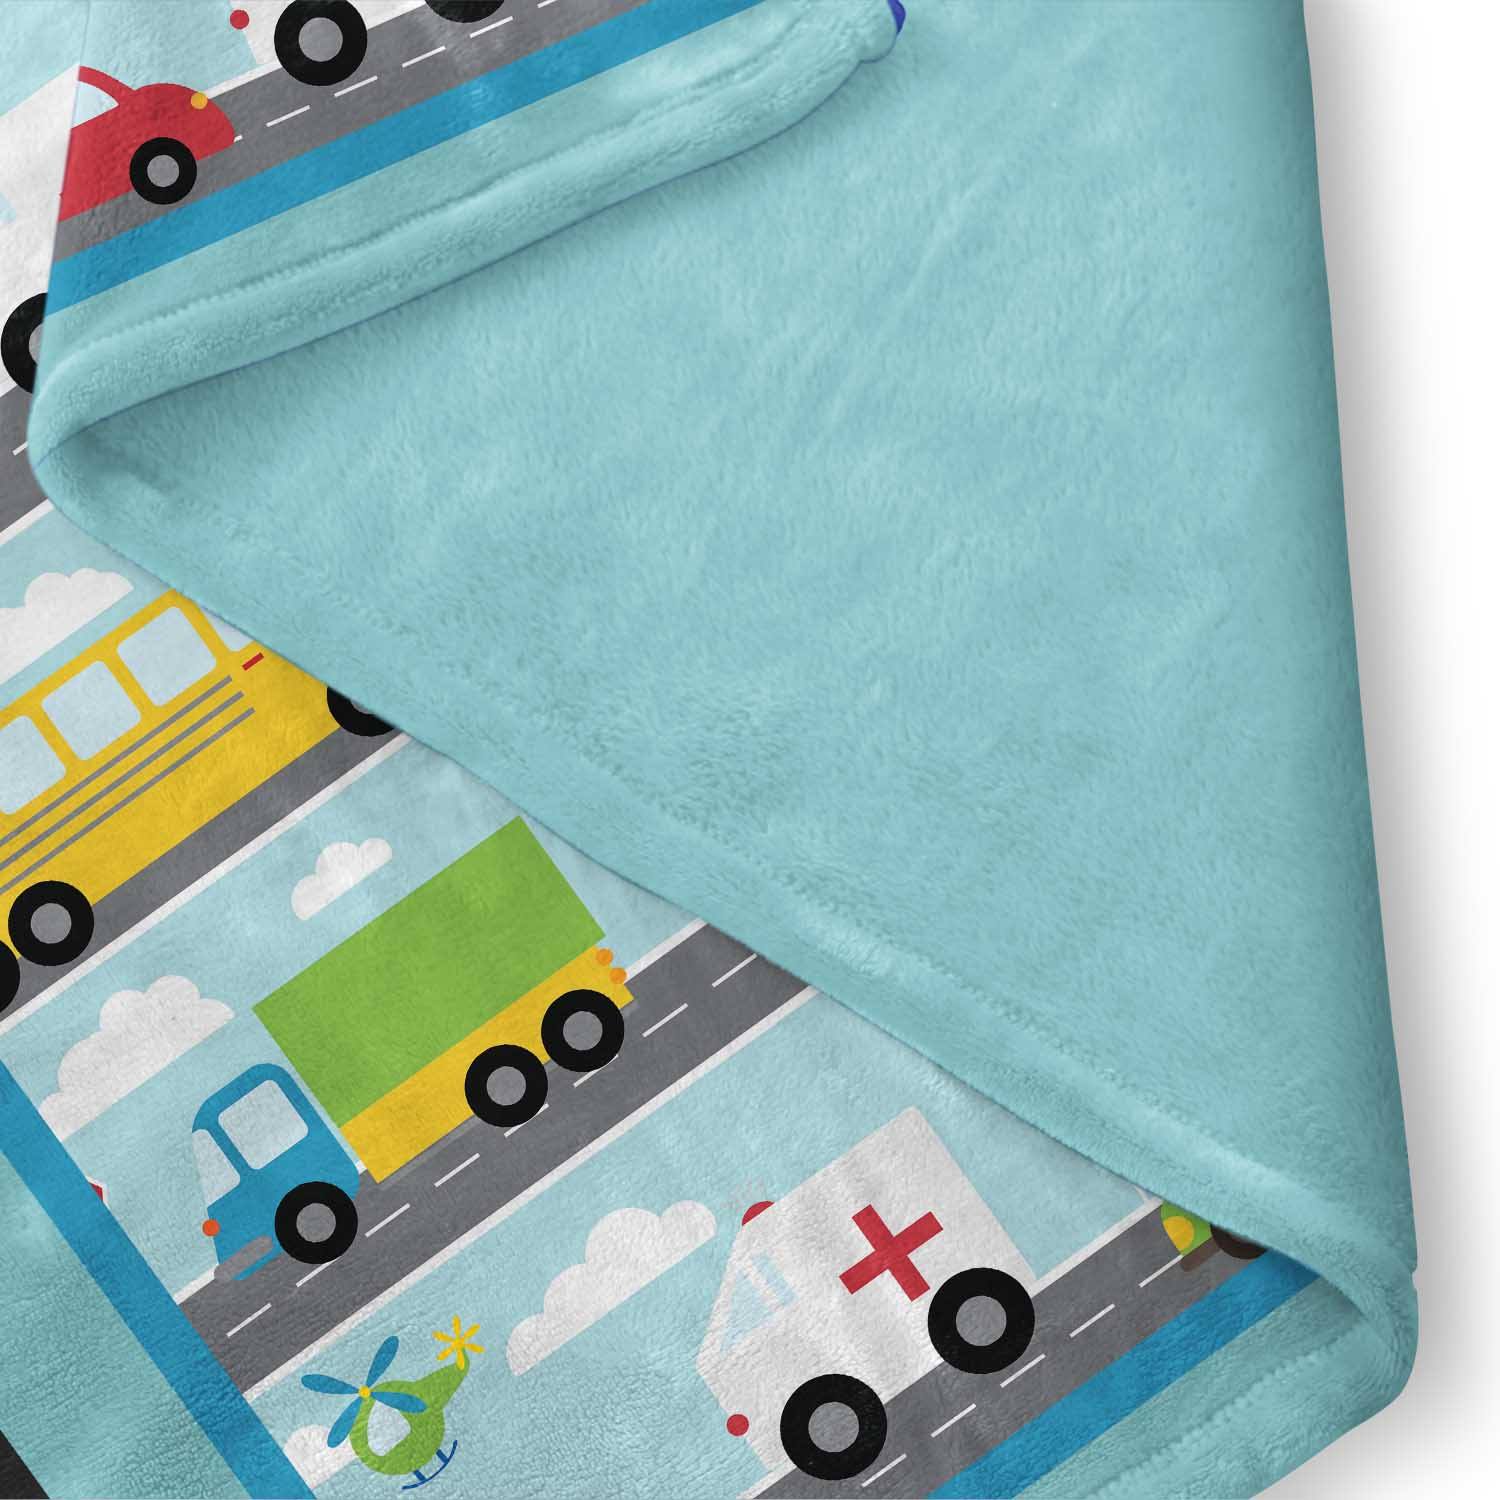 PKFLBL00020-ThingsThatGoVroom-FLEECEBLANKET50x60 Things That Go Vroom Transportation Theme Boys Kids Minky Fleece Throw Blanket Room Decor Accesories by Pickleberry Kids